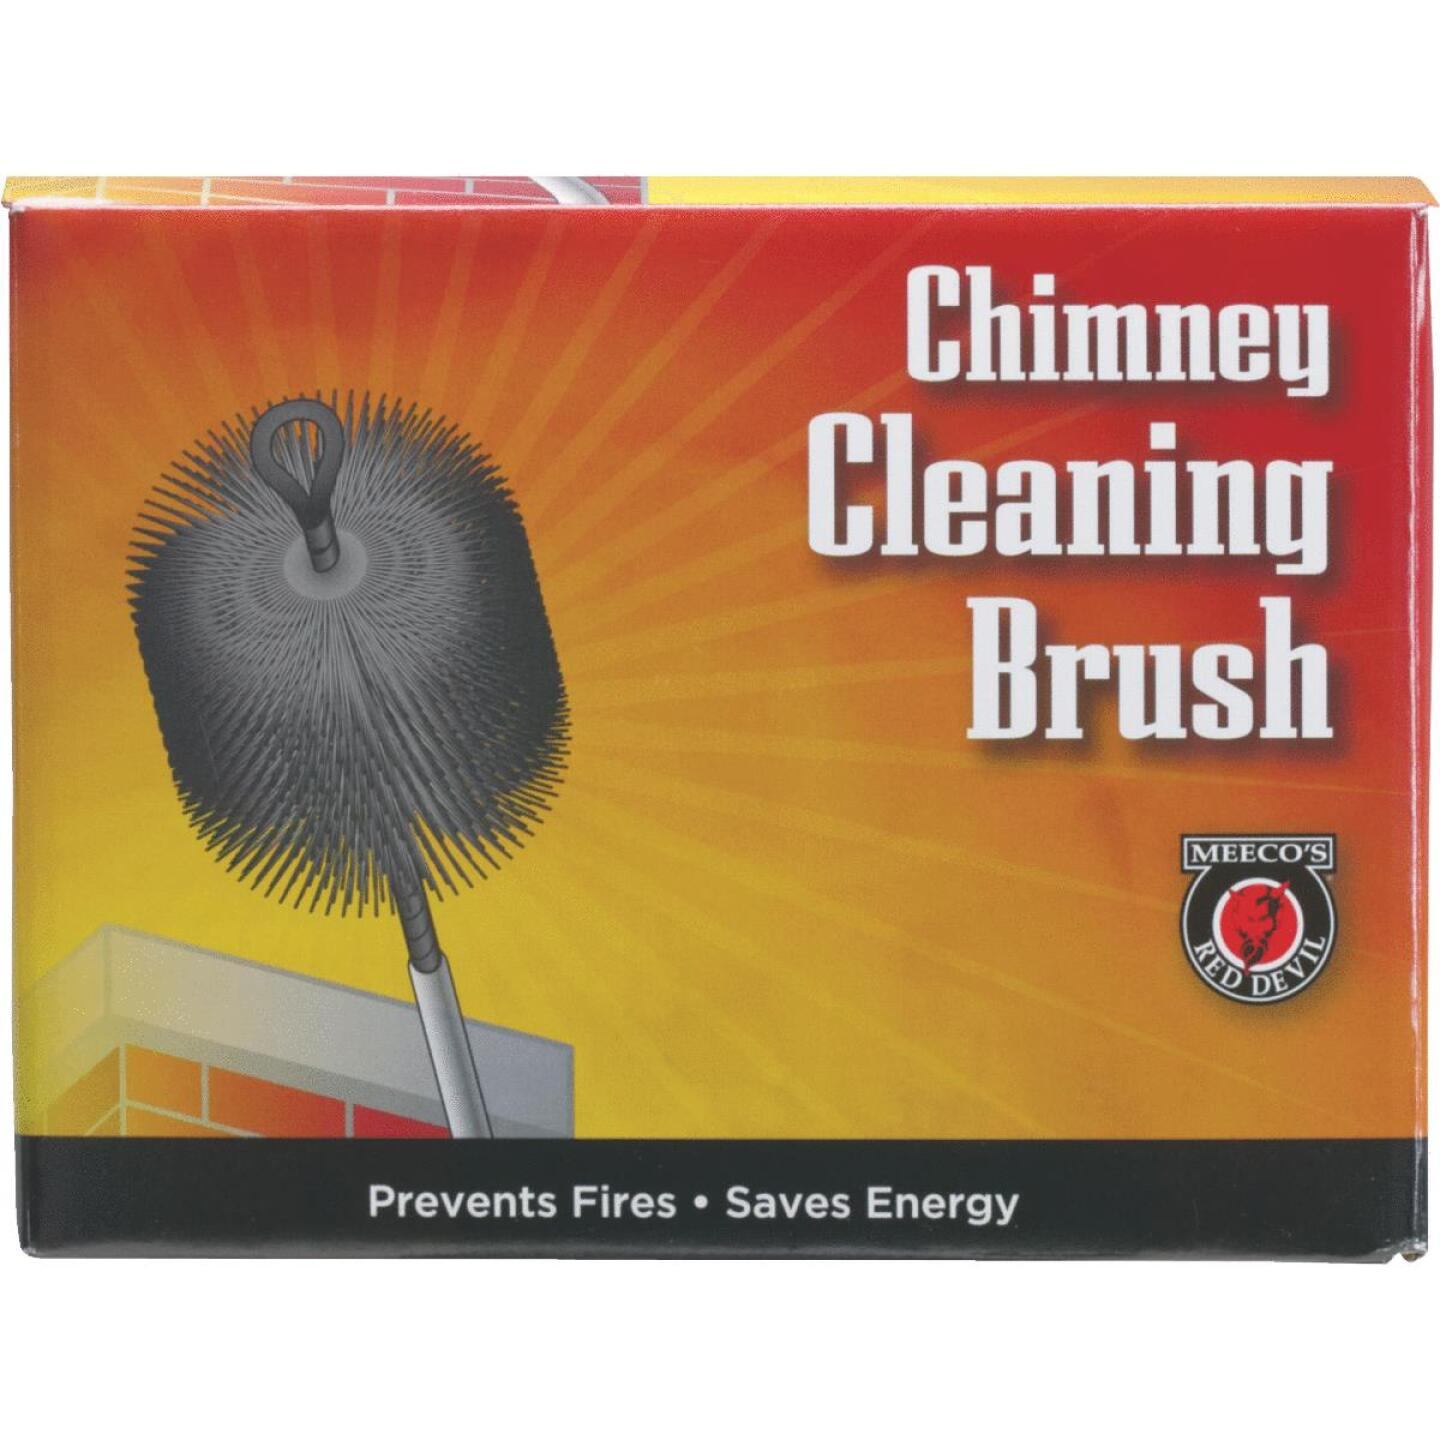 Meeco's Red Devil 8 In. Round Poly Chimney Brush Image 2